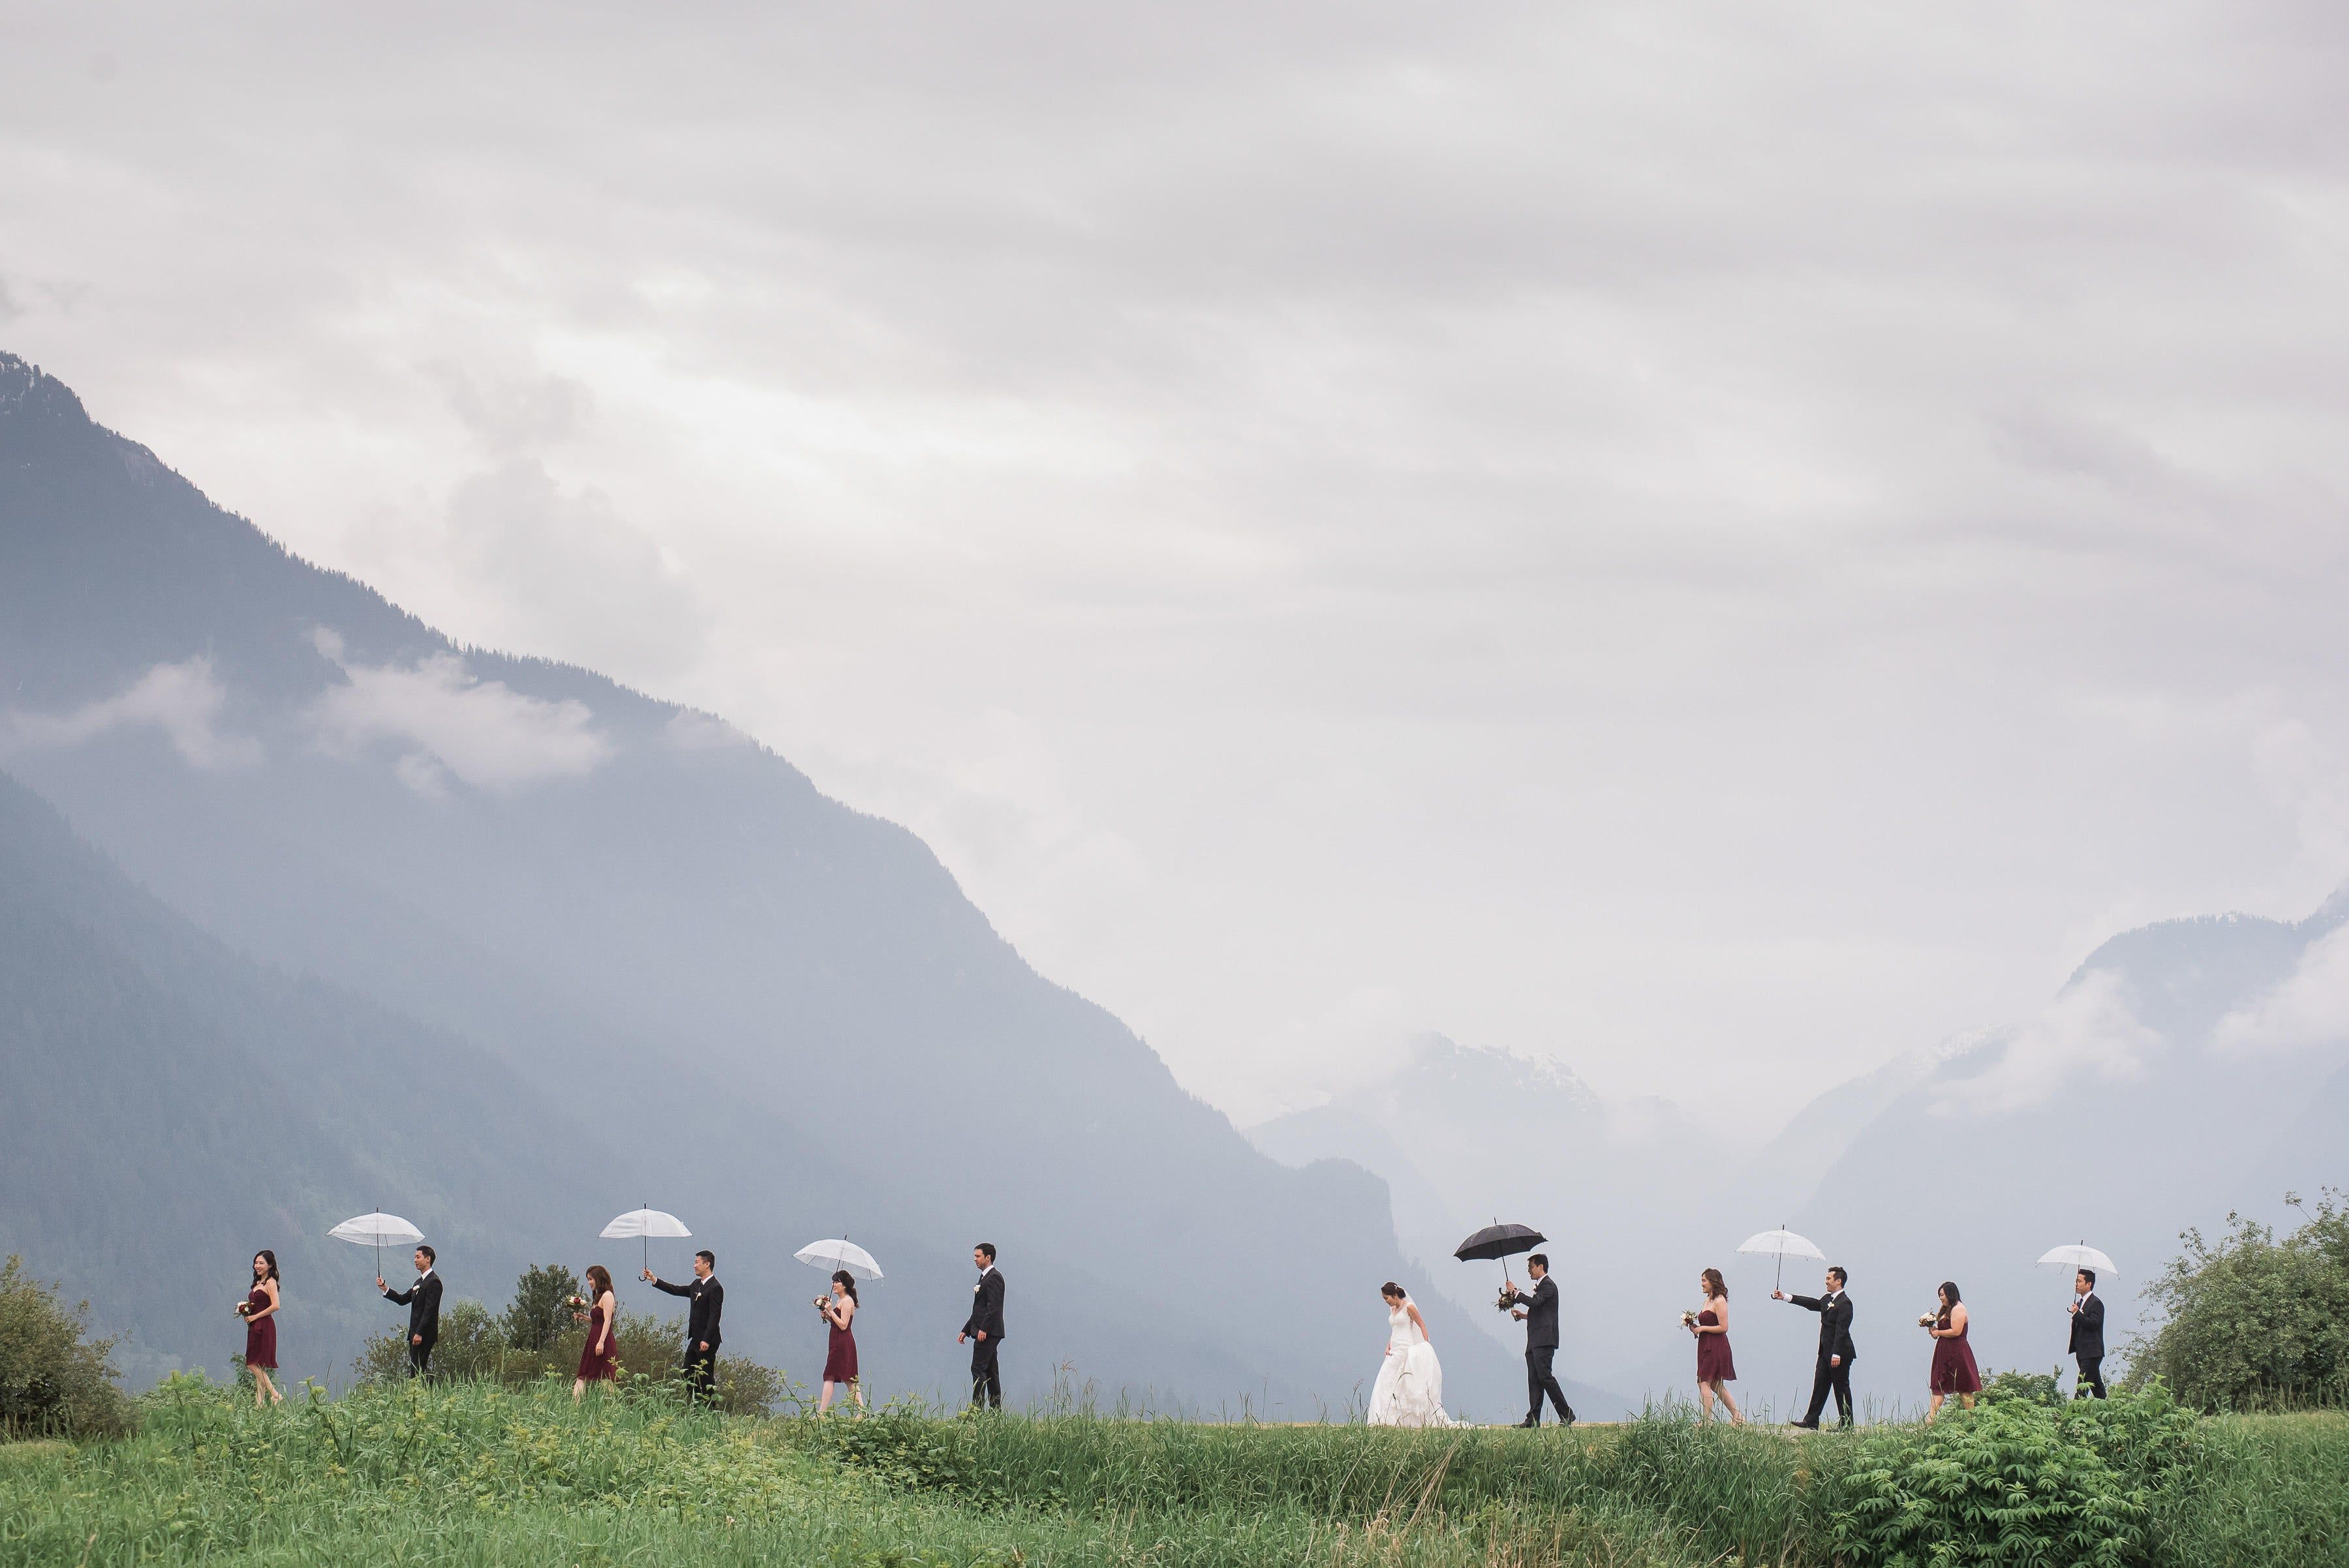 Bride & groom posing with bridesmaid & groomsmen with umbrellas in hand in front of a hillside landscape